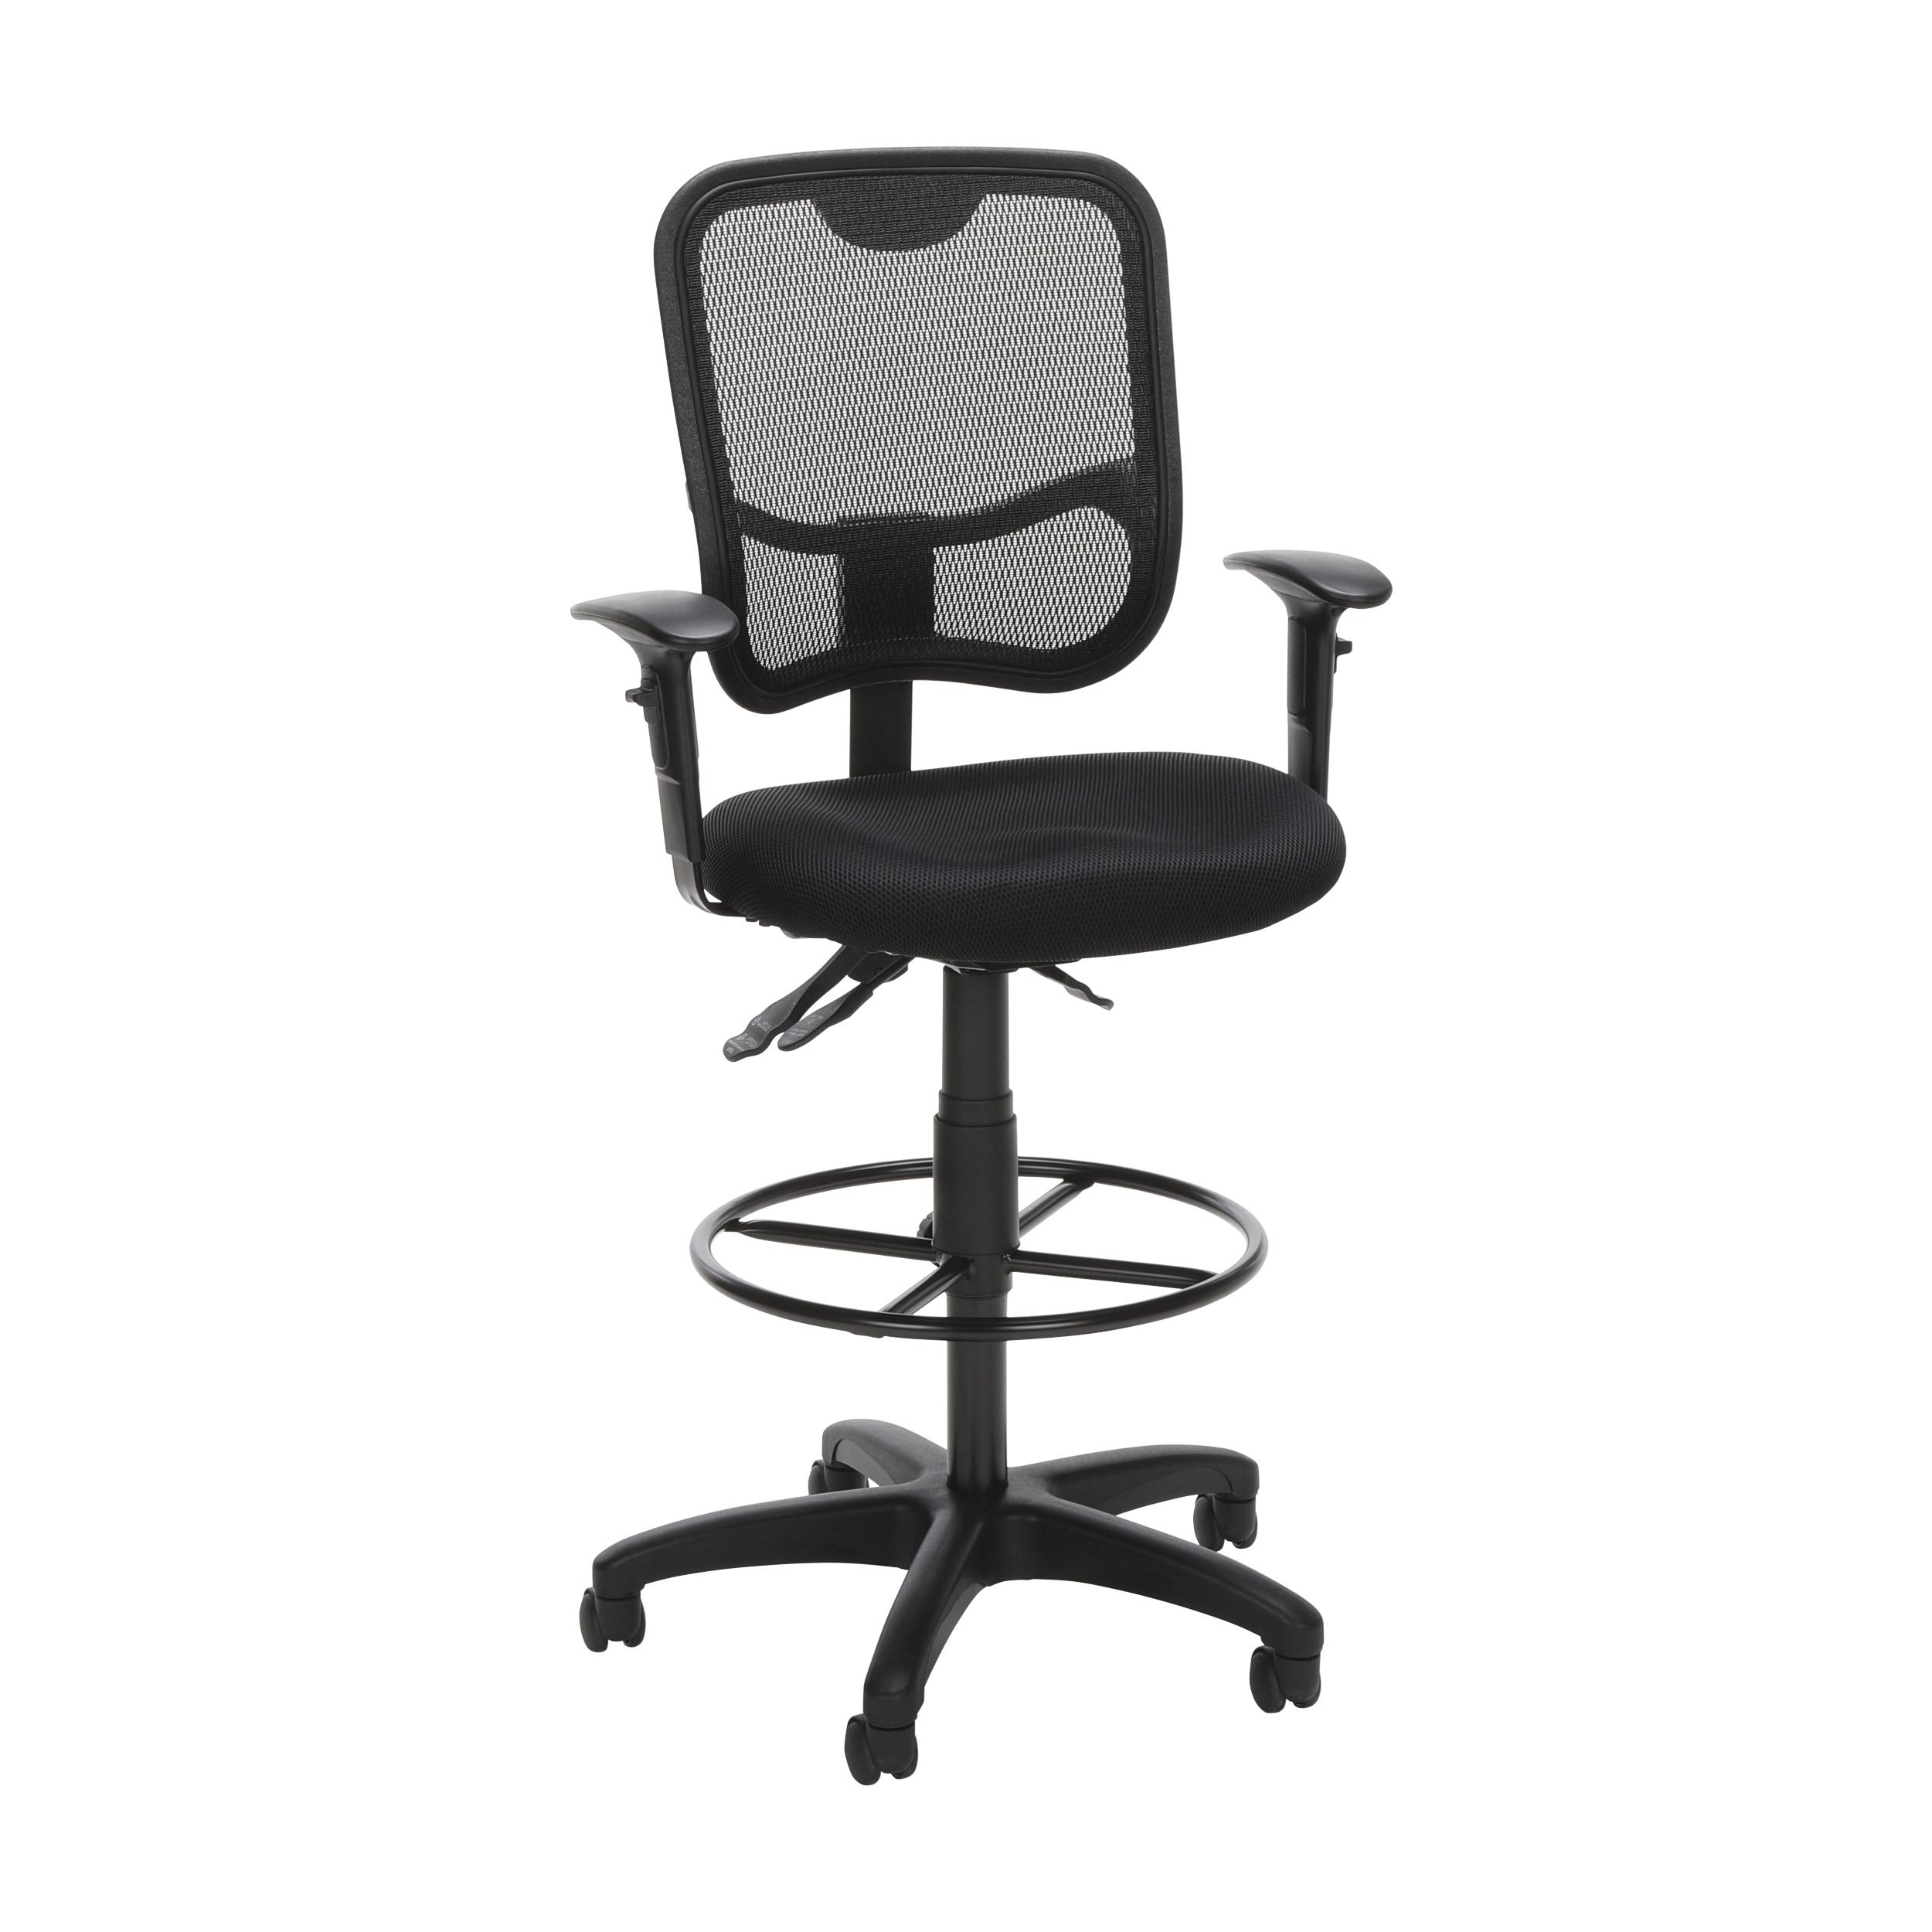 OFM Comfort Series Ergonomic Mesh Swivel Task Chair with Arms and Drafting Kit, Mid Back, in Black (130-AA3-DK-A05) by OFM